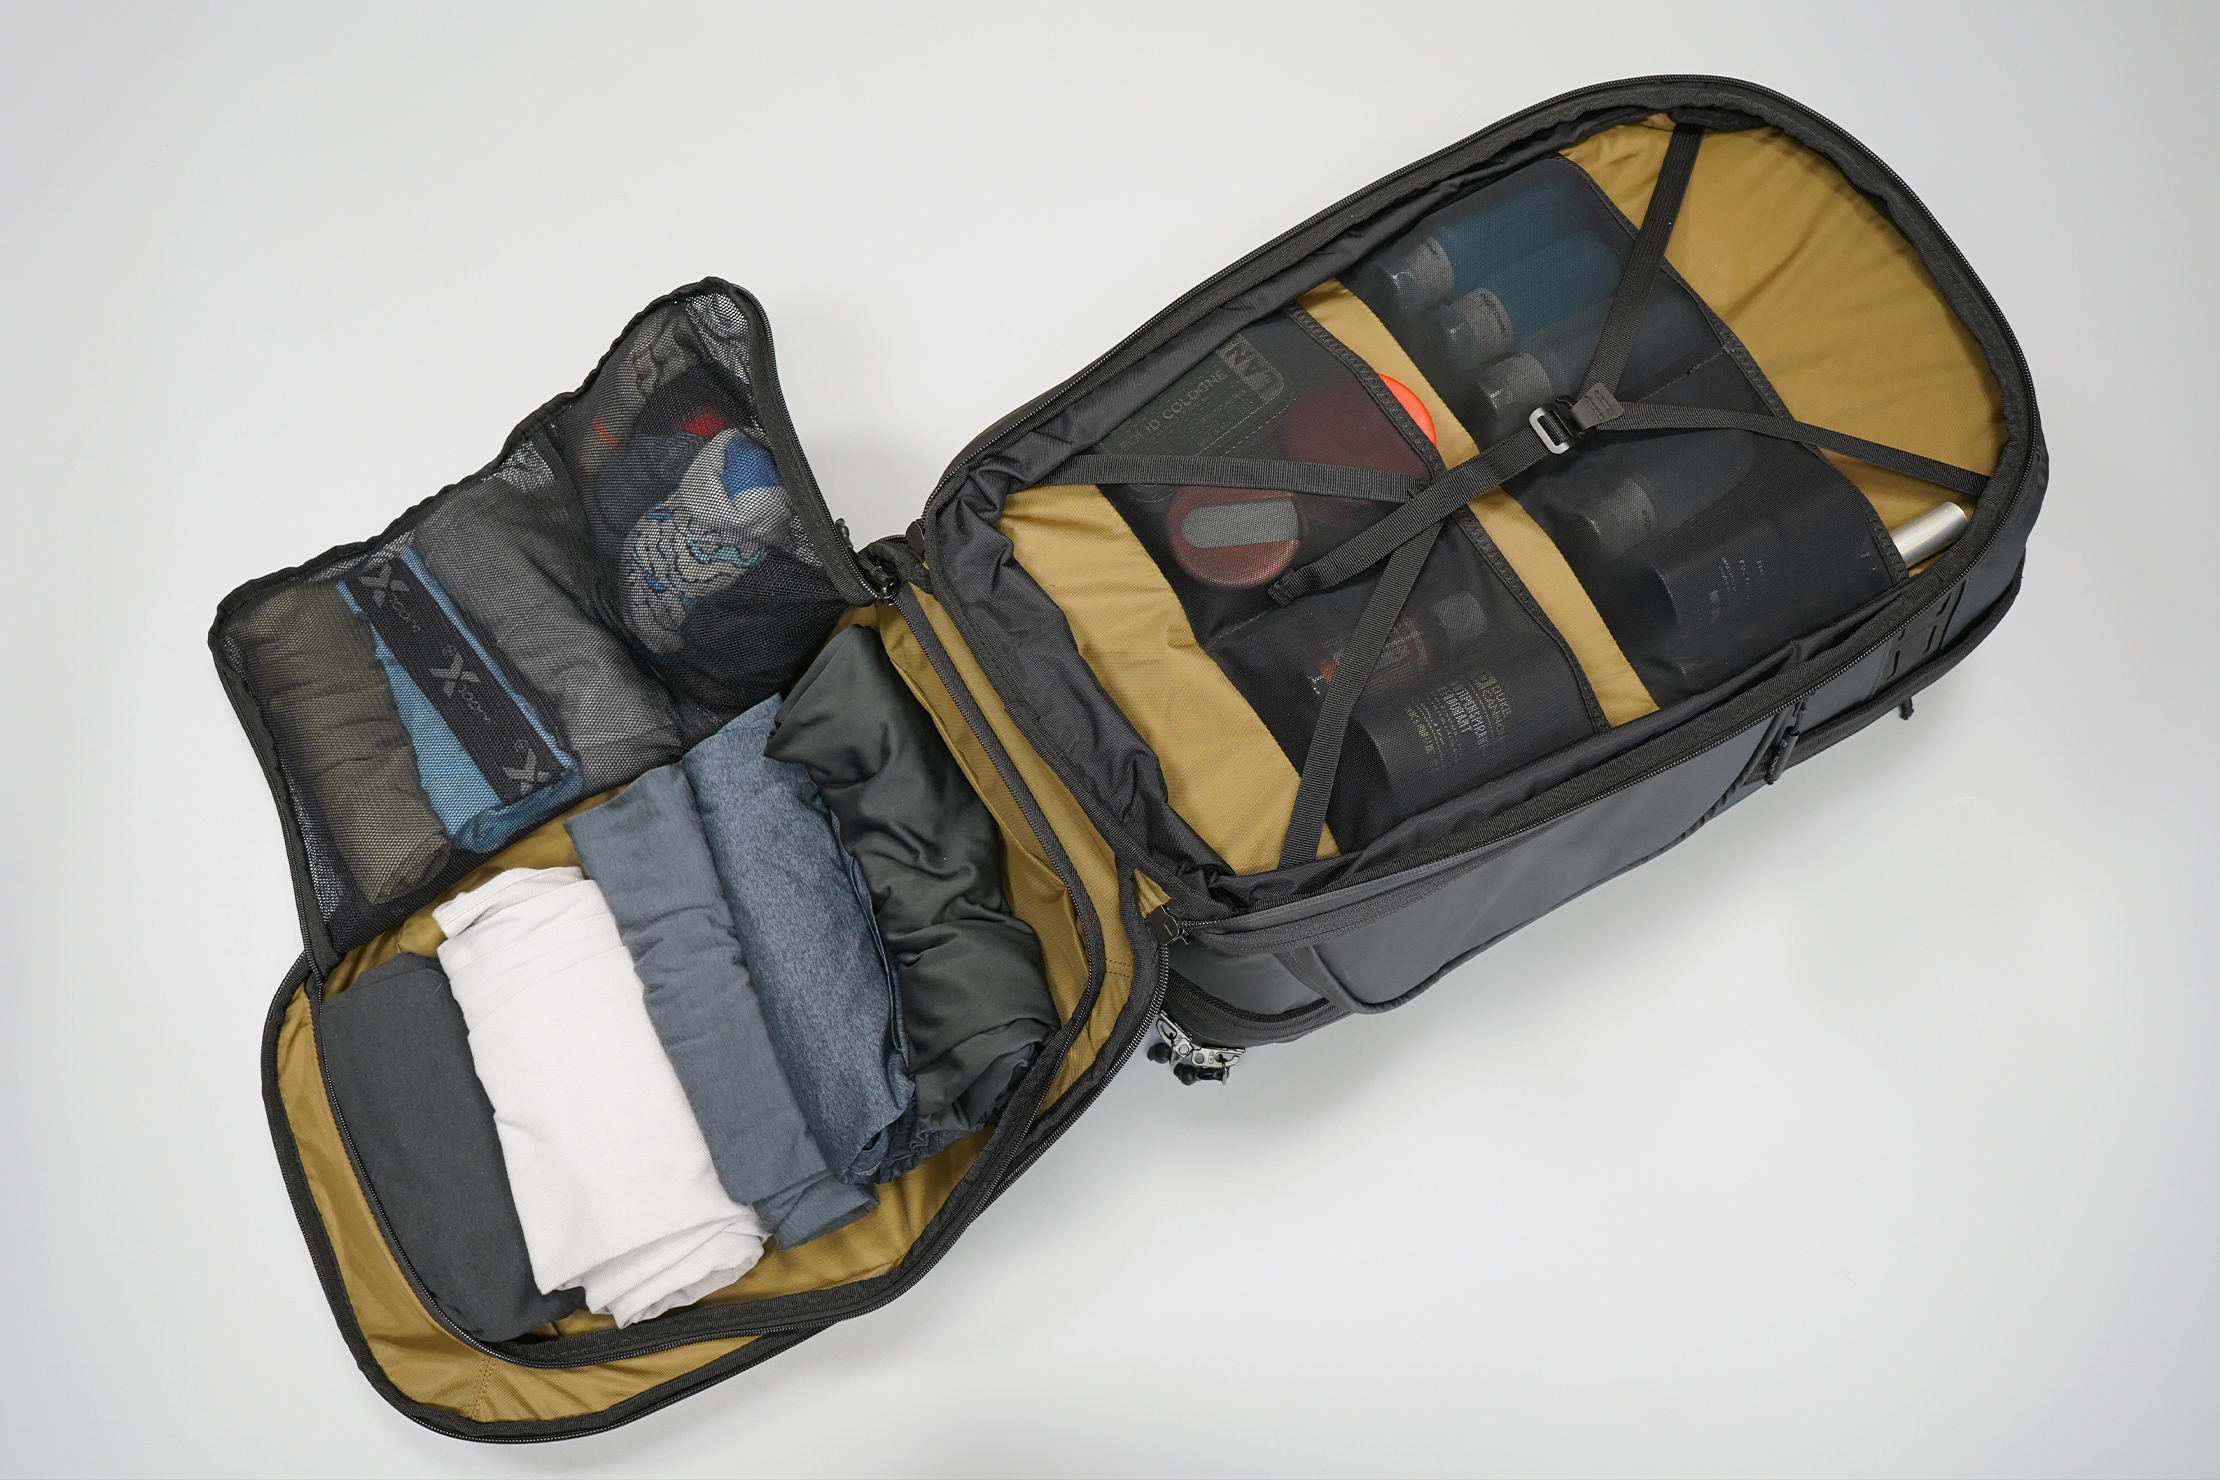 NOMATIC McKinnon Camera Pack 35L | Plenty of space for clothes, not just for camera gear